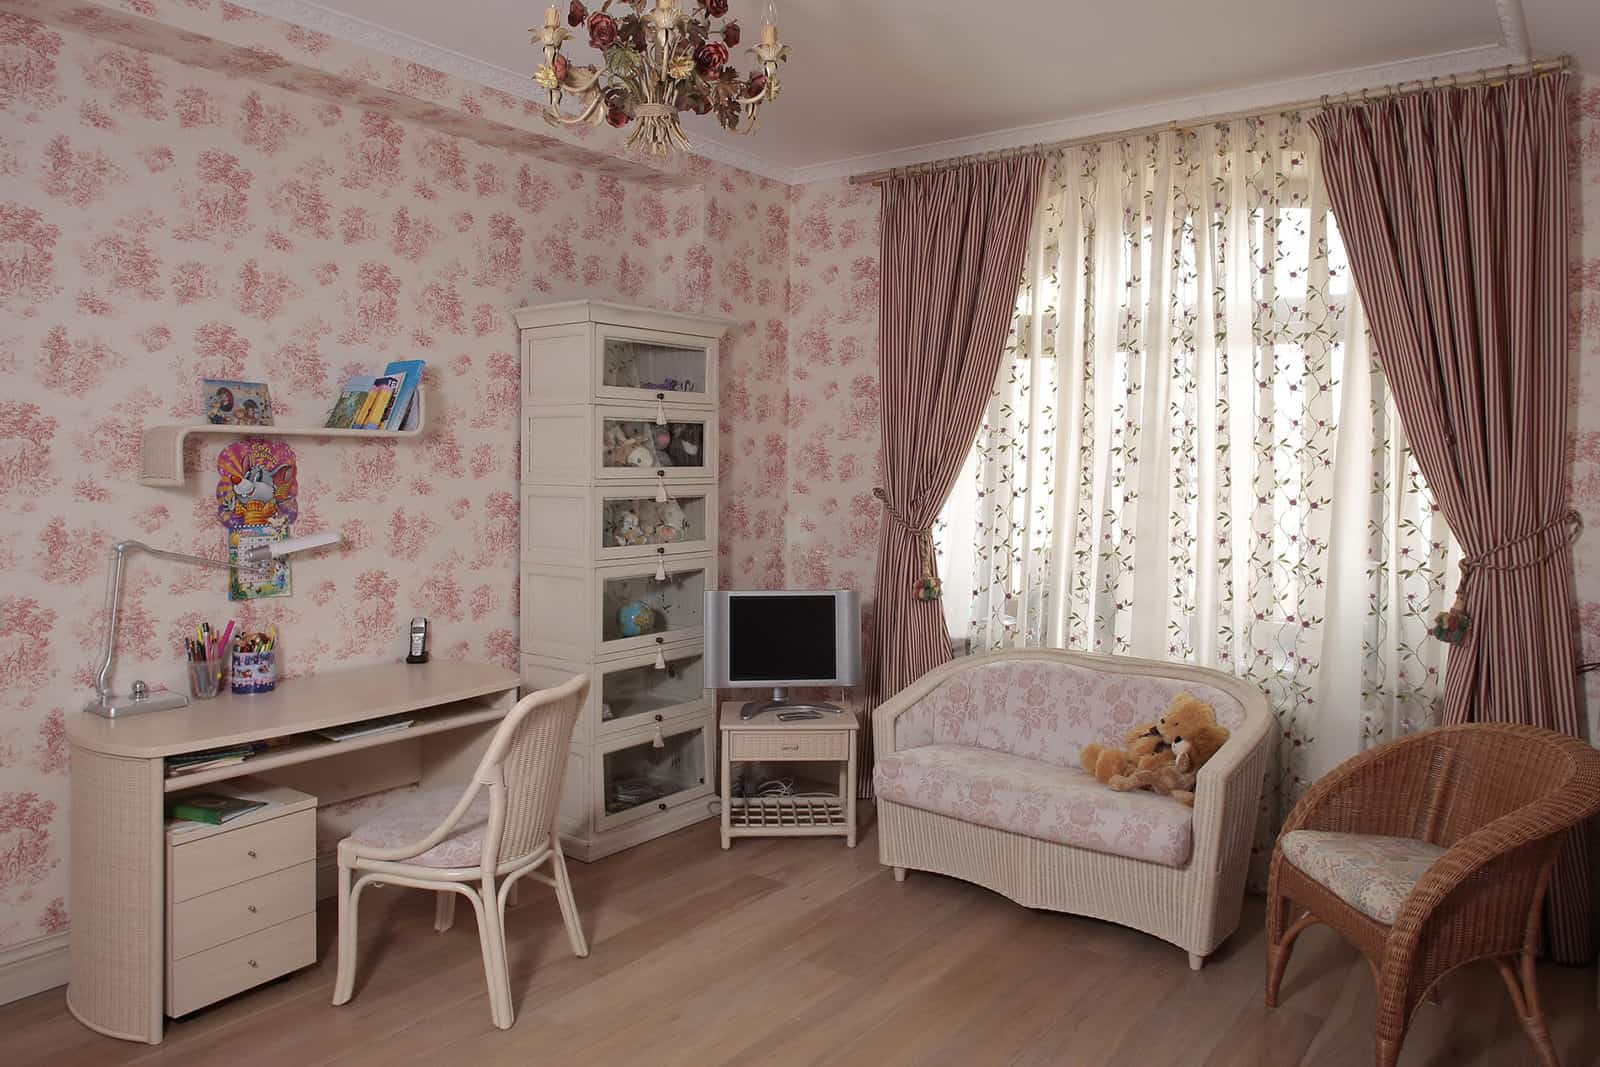 Kids room ideas french country decor house interior for French country decor